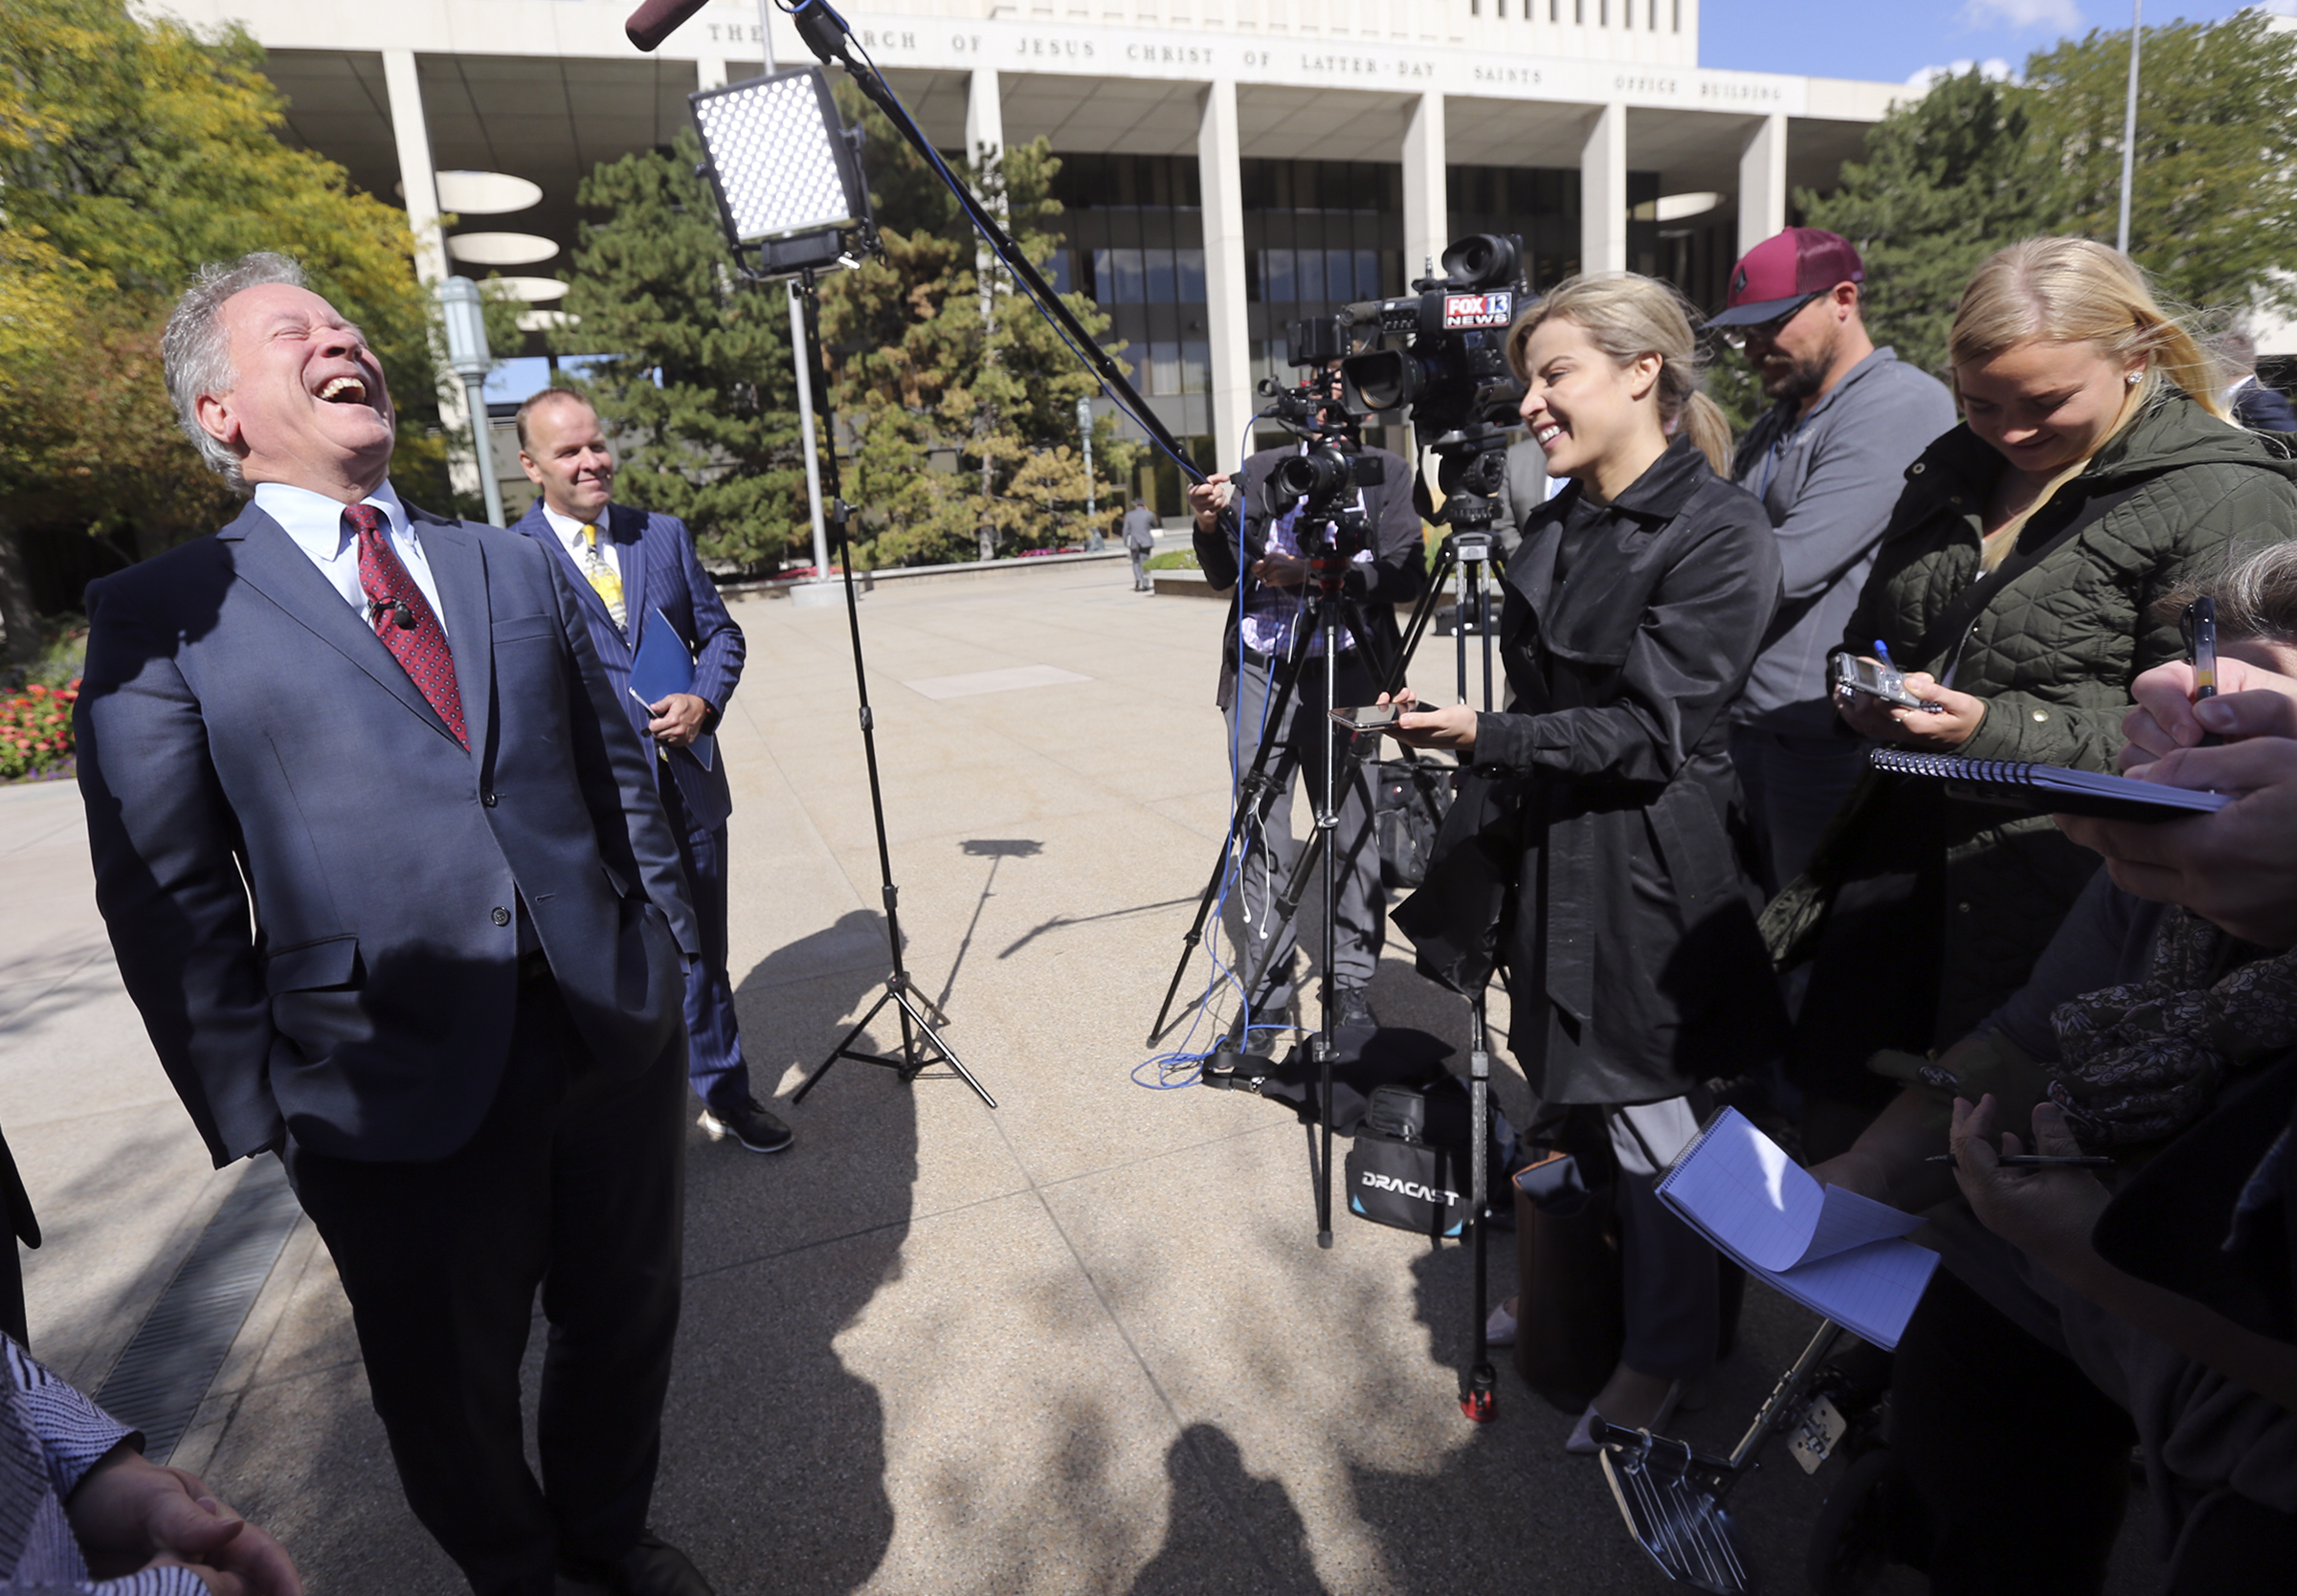 David Beasley, United Nations World Food Programme executive director, laughs while talking to members of the media outside the Church Office Building in Salt Lake City on Monday, Sept. 30, 2019.